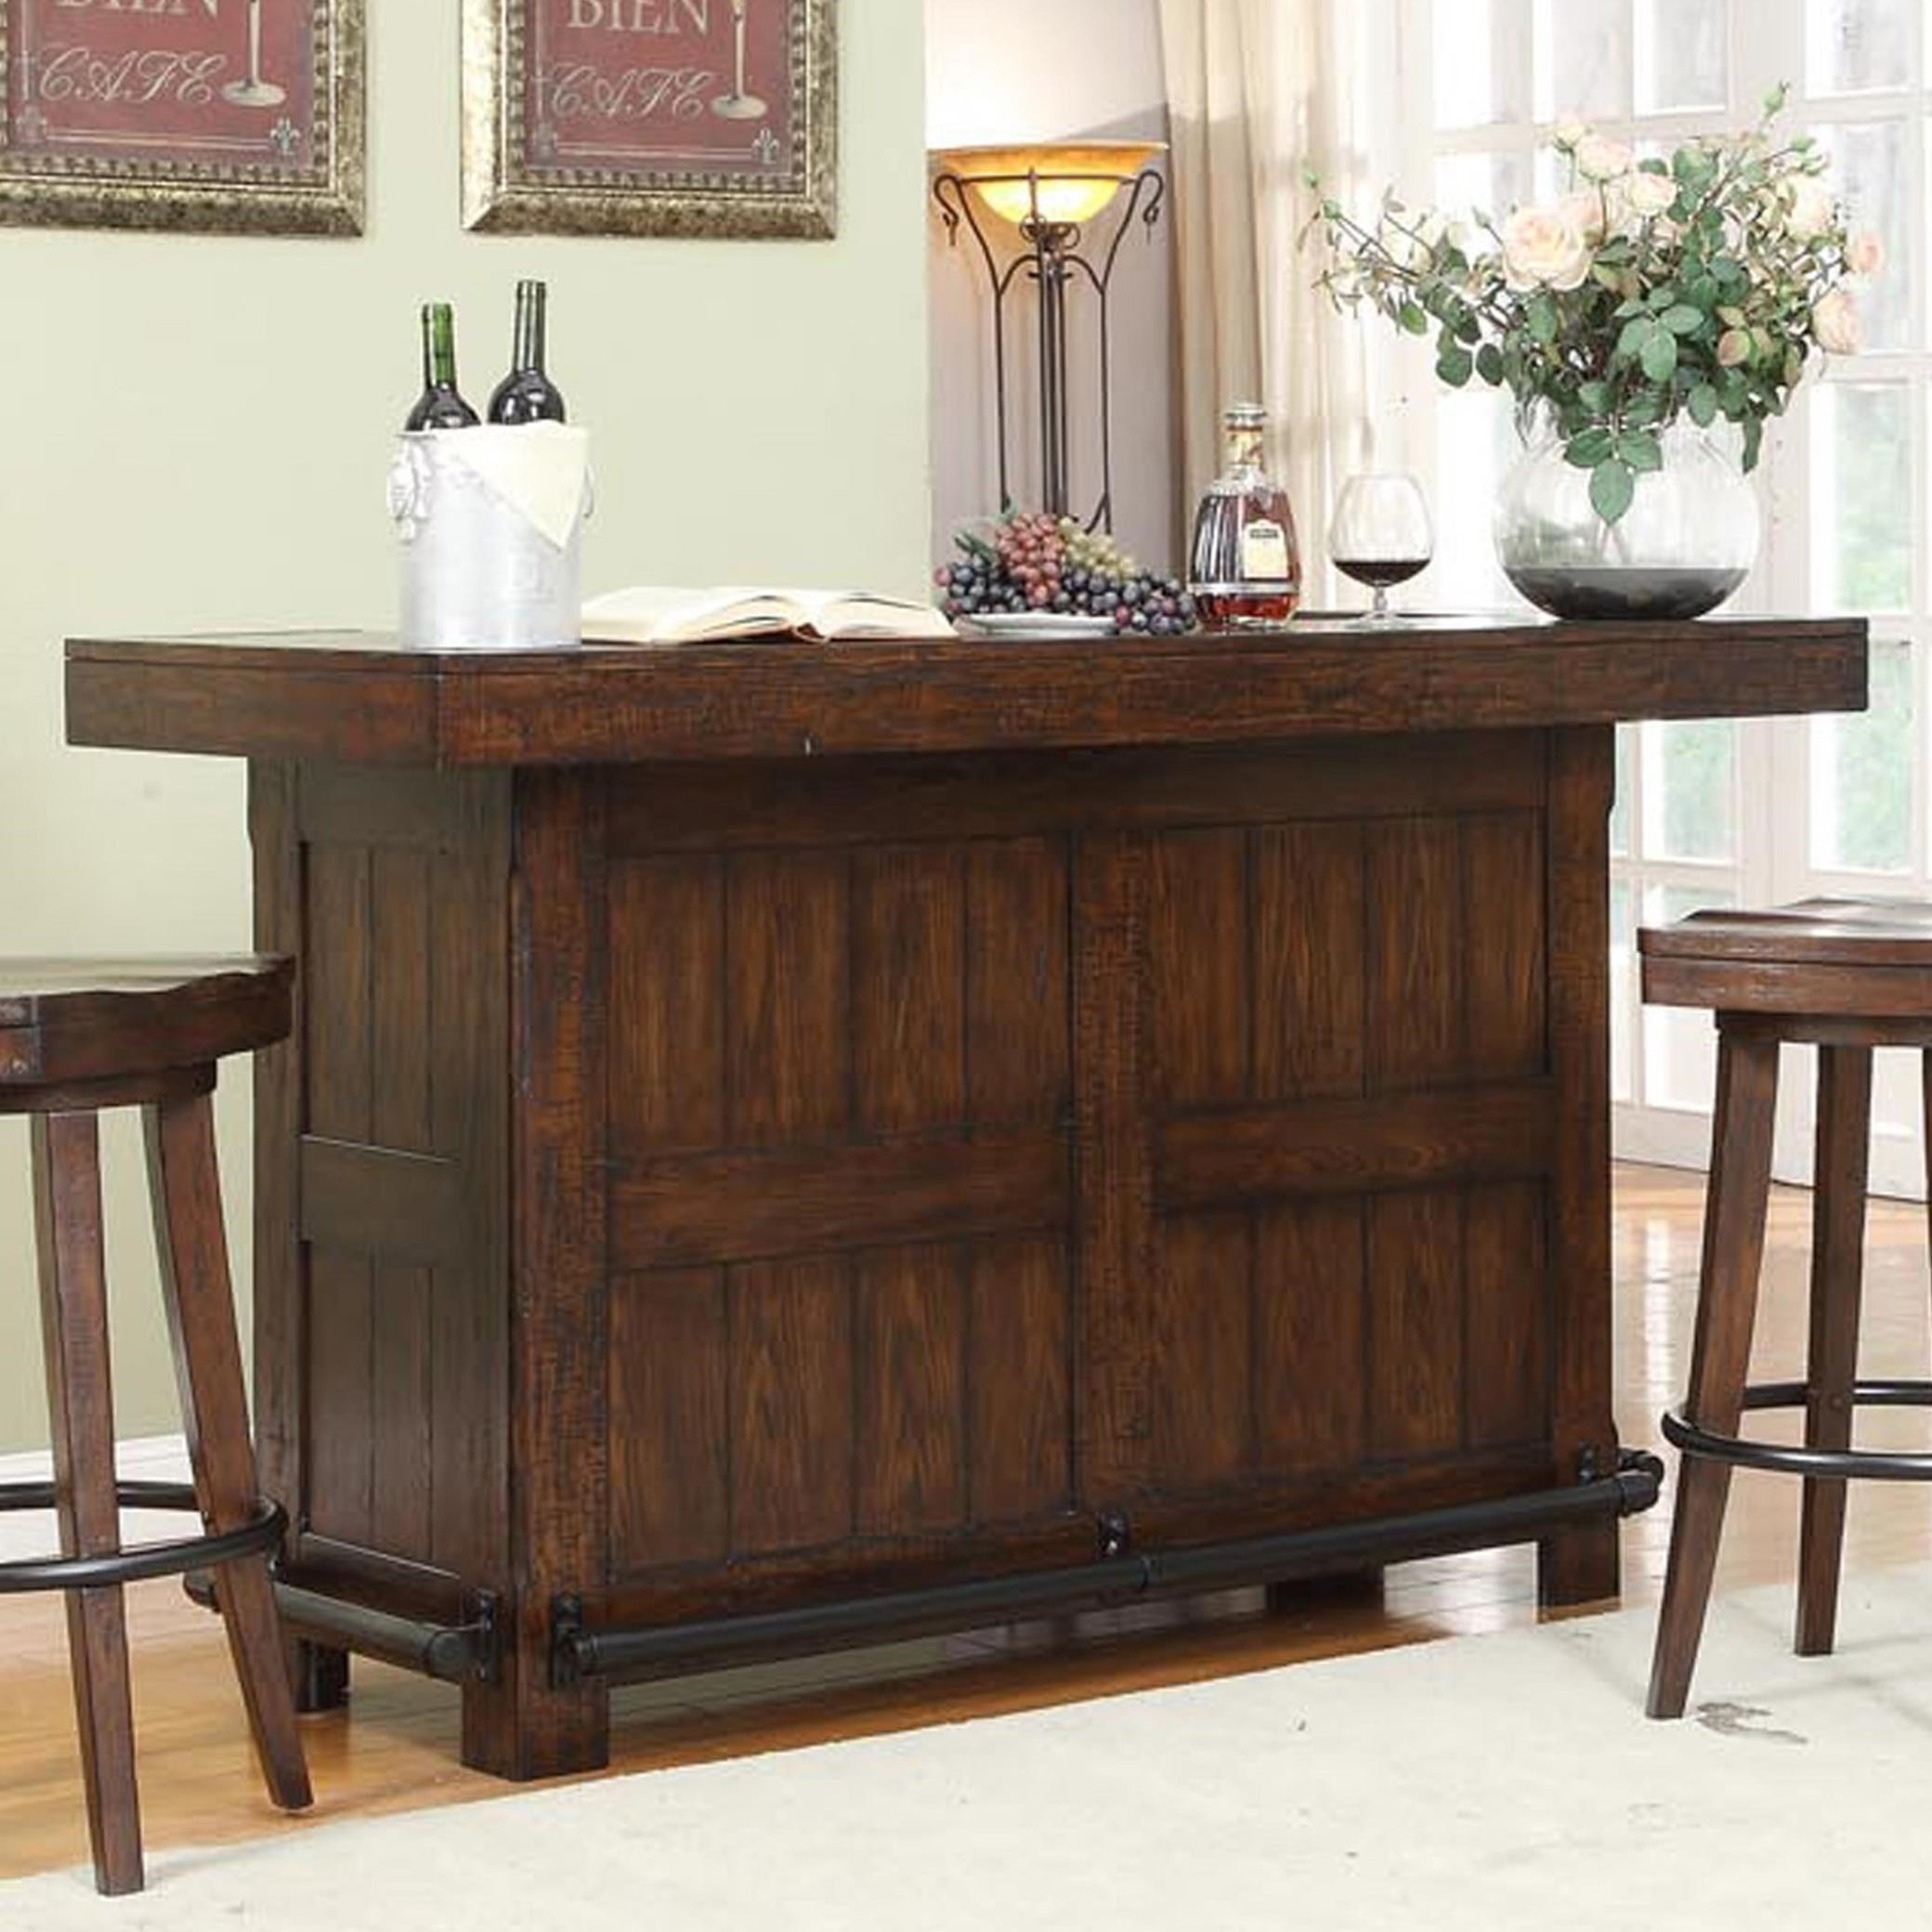 E C I Furniture Gettysburg 1475 05 B T Gettysburg Bar With Bottle Opener Becker Furniture